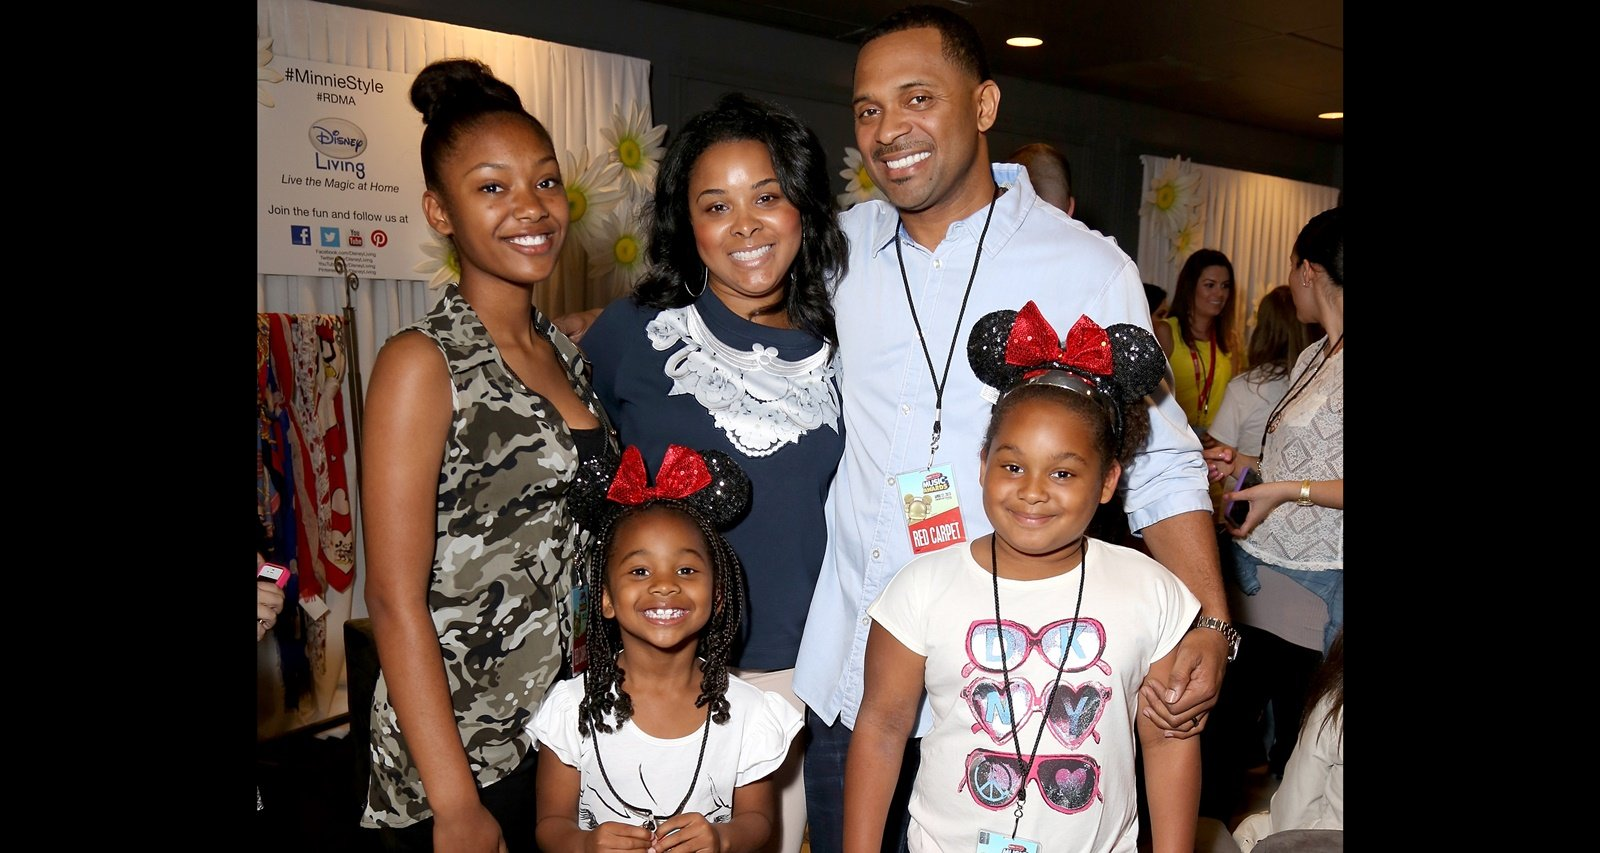 Mike Epps' Family: Facts to Know about the Comedian's Children, Parents & Ex-Wife